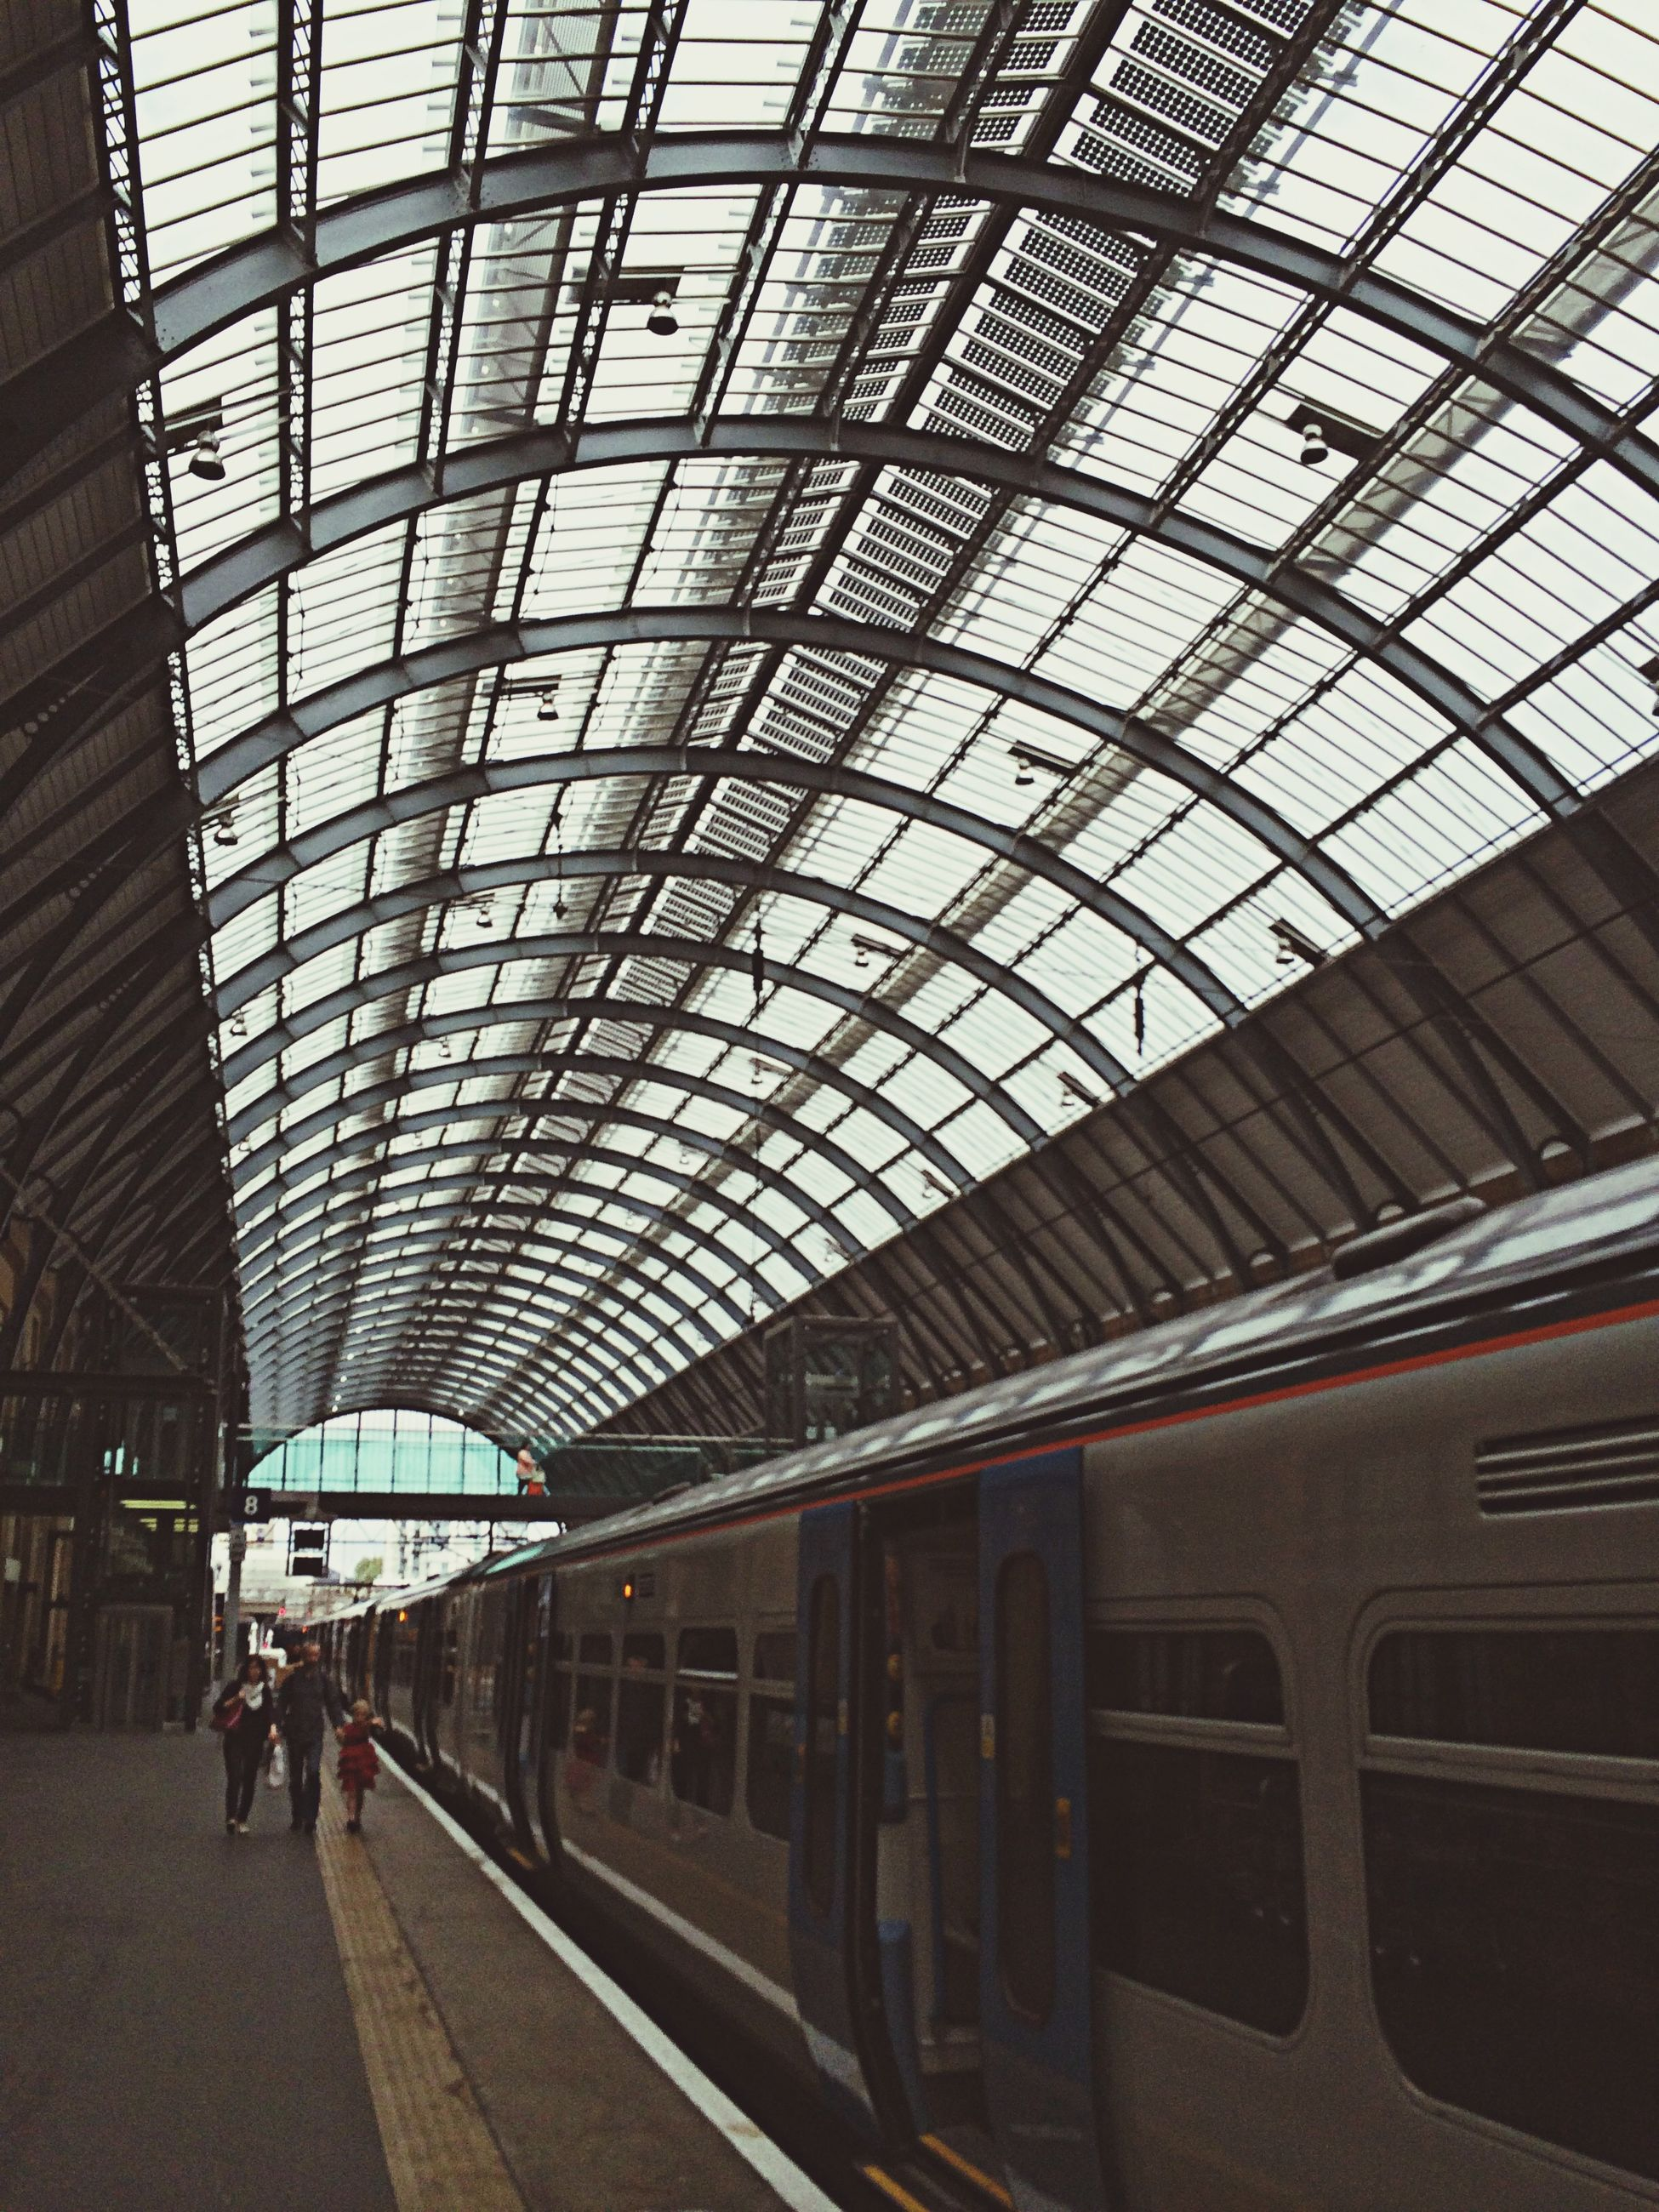 transportation, train - vehicle, railroad station platform, public transportation, rail transportation, railroad station, indoors, passenger train, passenger, ceiling, mode of transport, journey, travel, subway train, men, real people, commuter train, day, people, adult